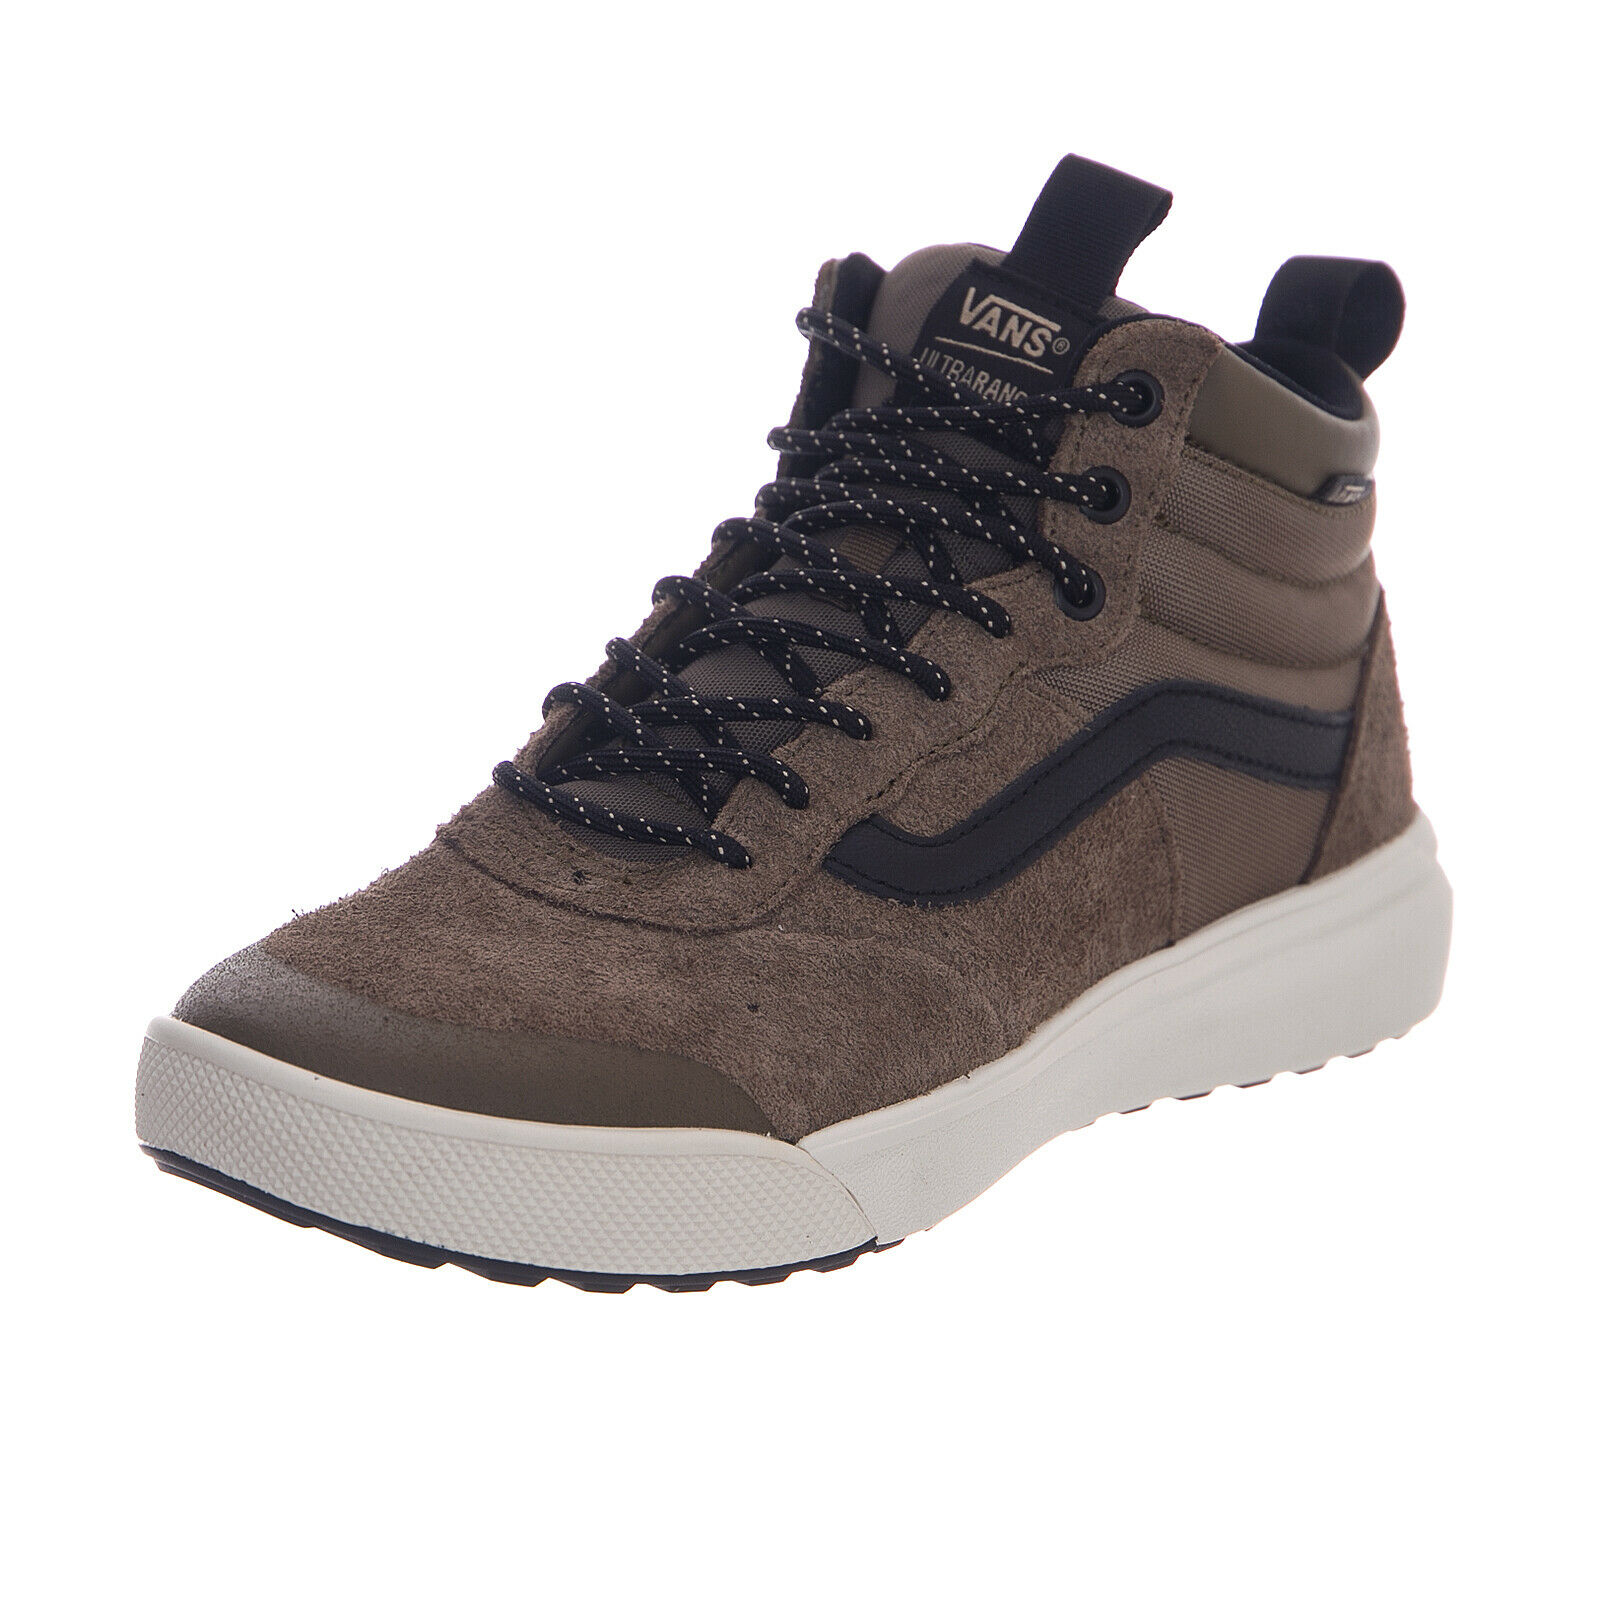 Vans Sneakers Ua Ultrarange Hi Cub   Marshmallow Brown